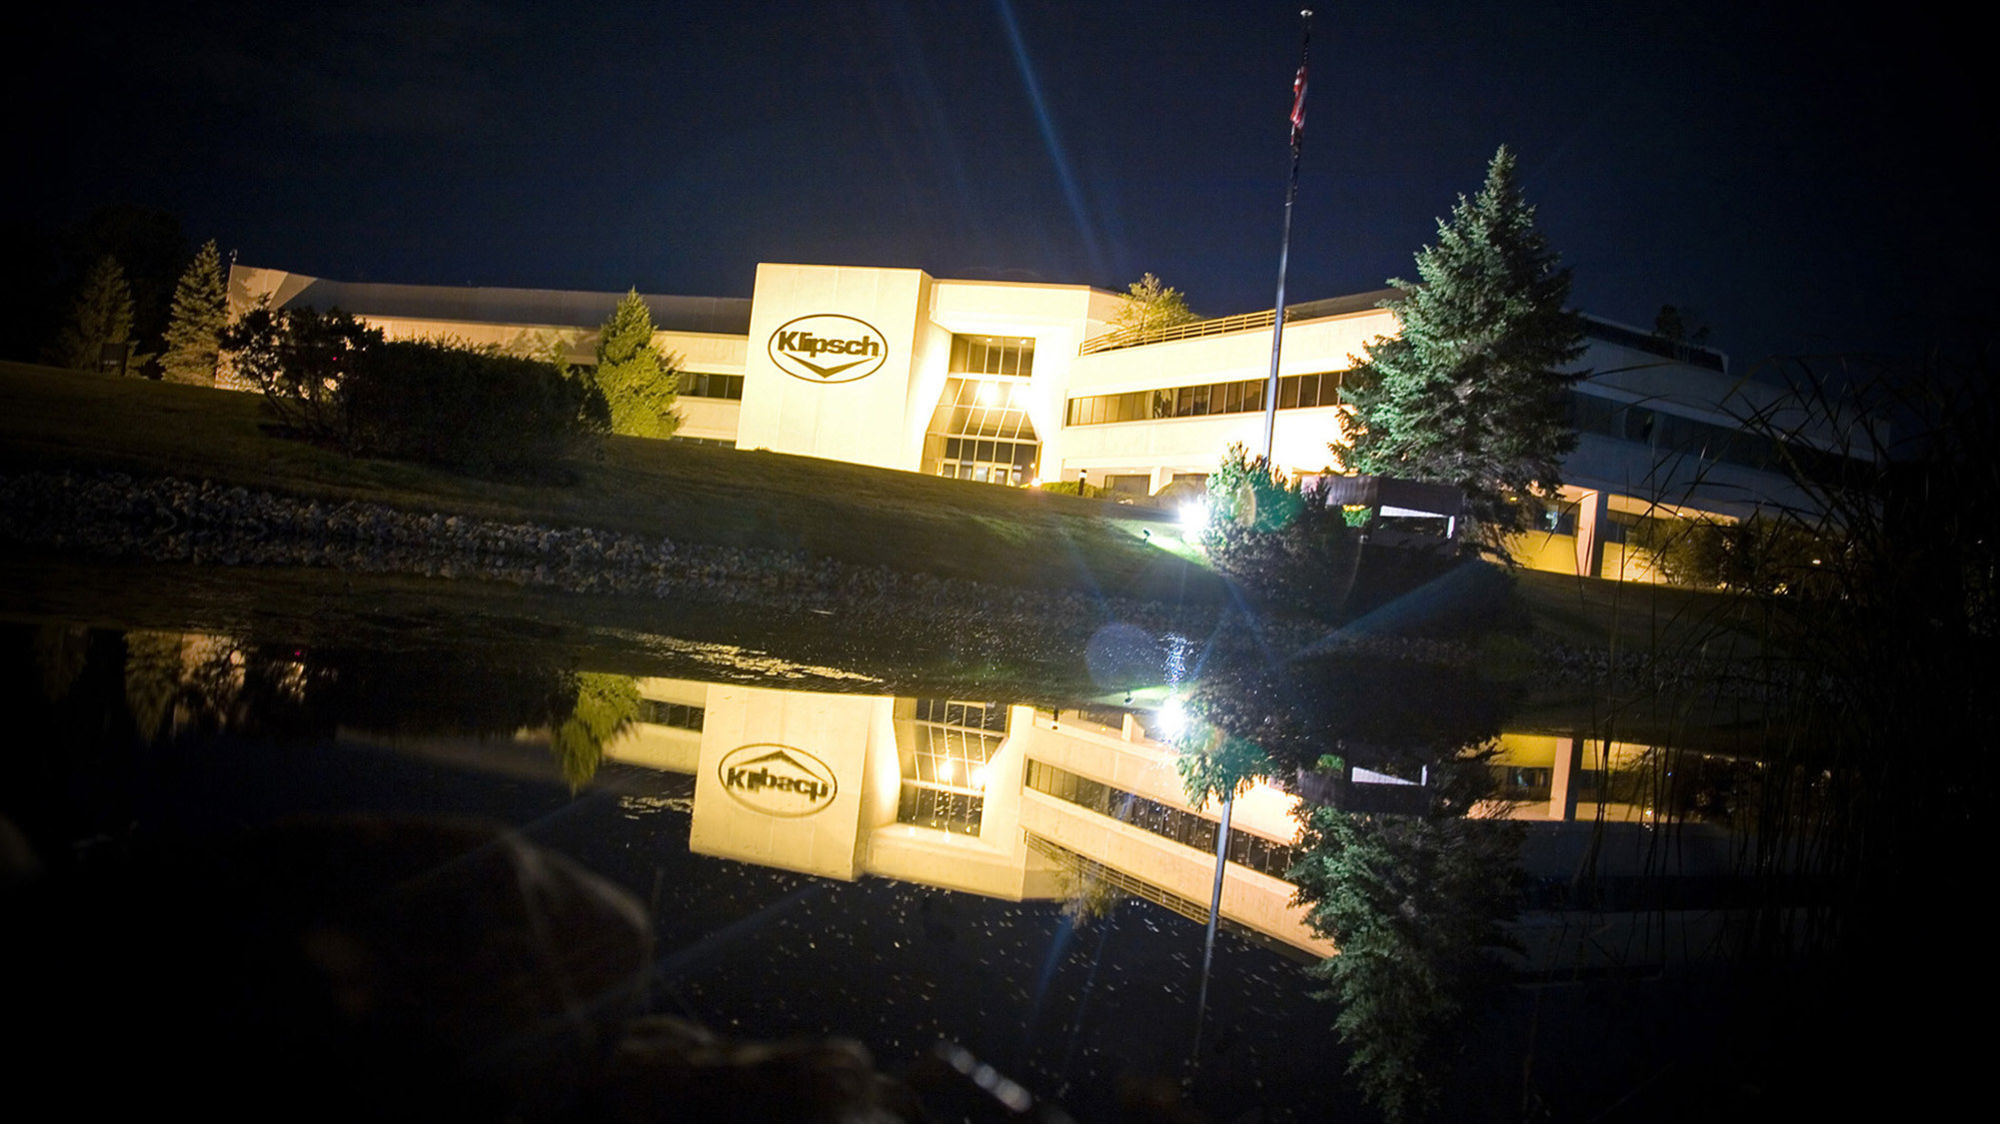 Klipsch Hq Indianapolis At Night 2000x1125